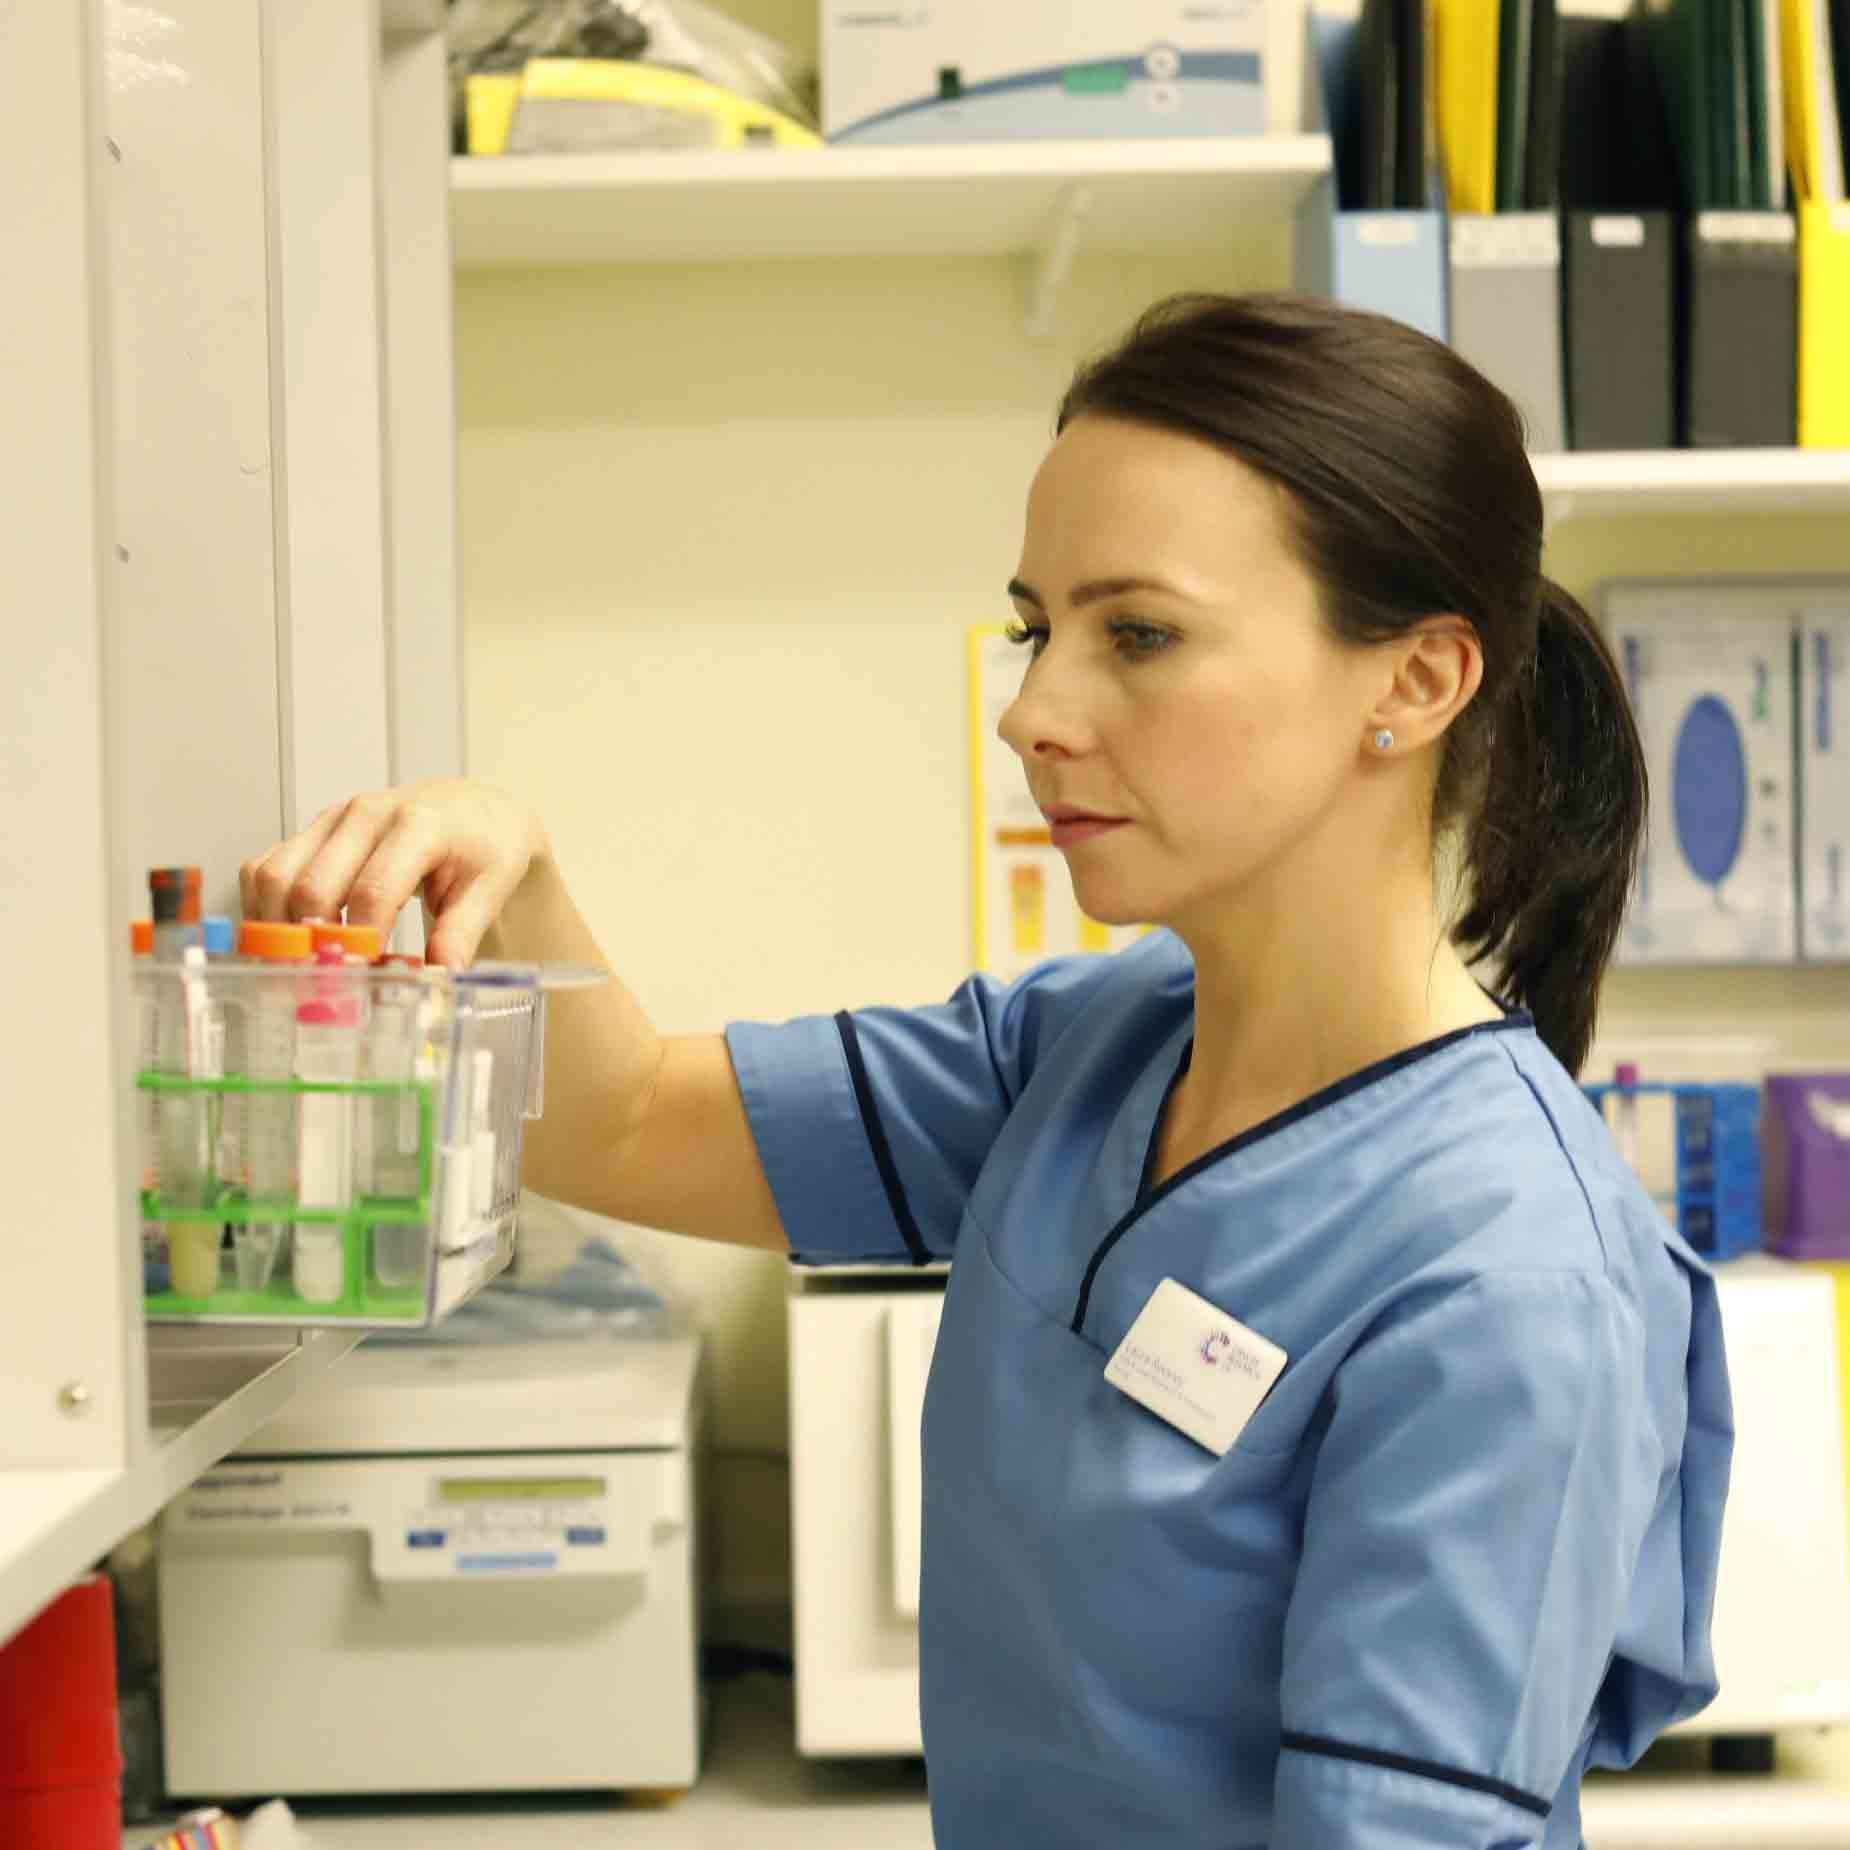 Laura, a researcher in the hospital